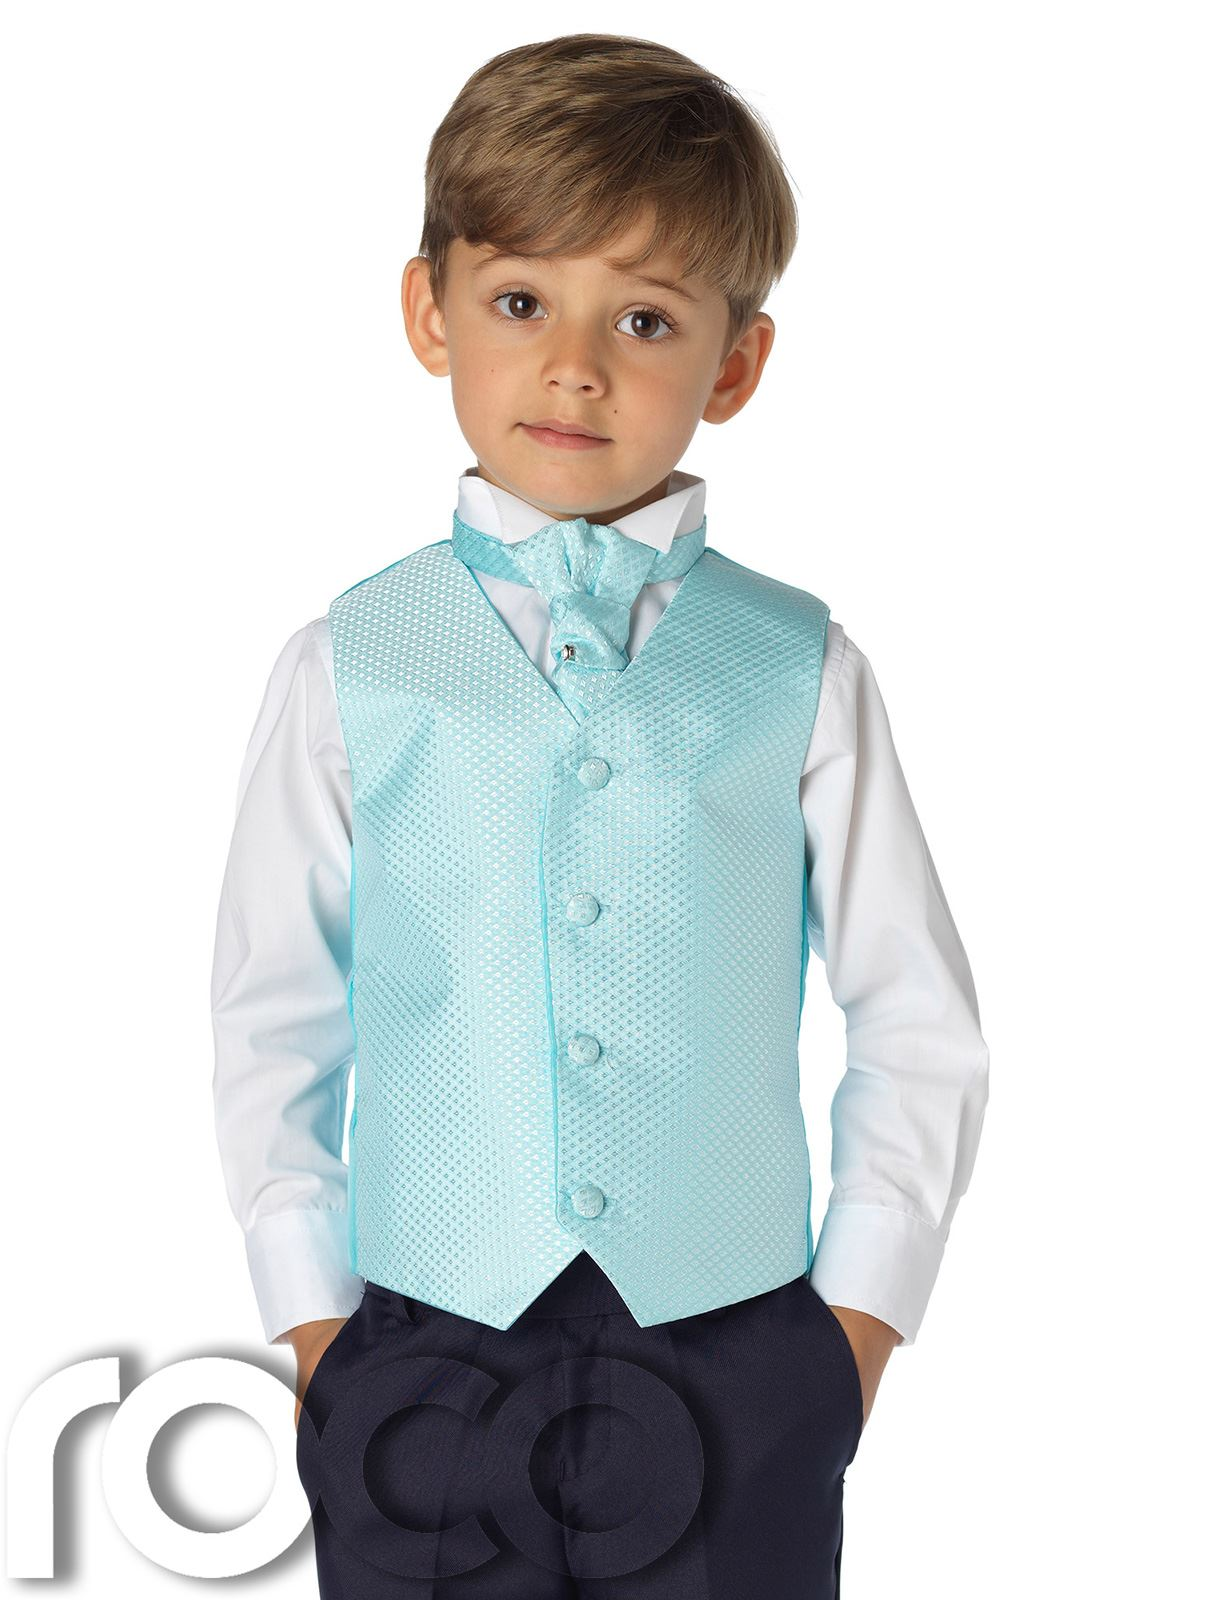 Shop for boys waistcoats at manga-hub.tk Next day delivery and free returns available. s of products online. Buy boys waistcoats now!